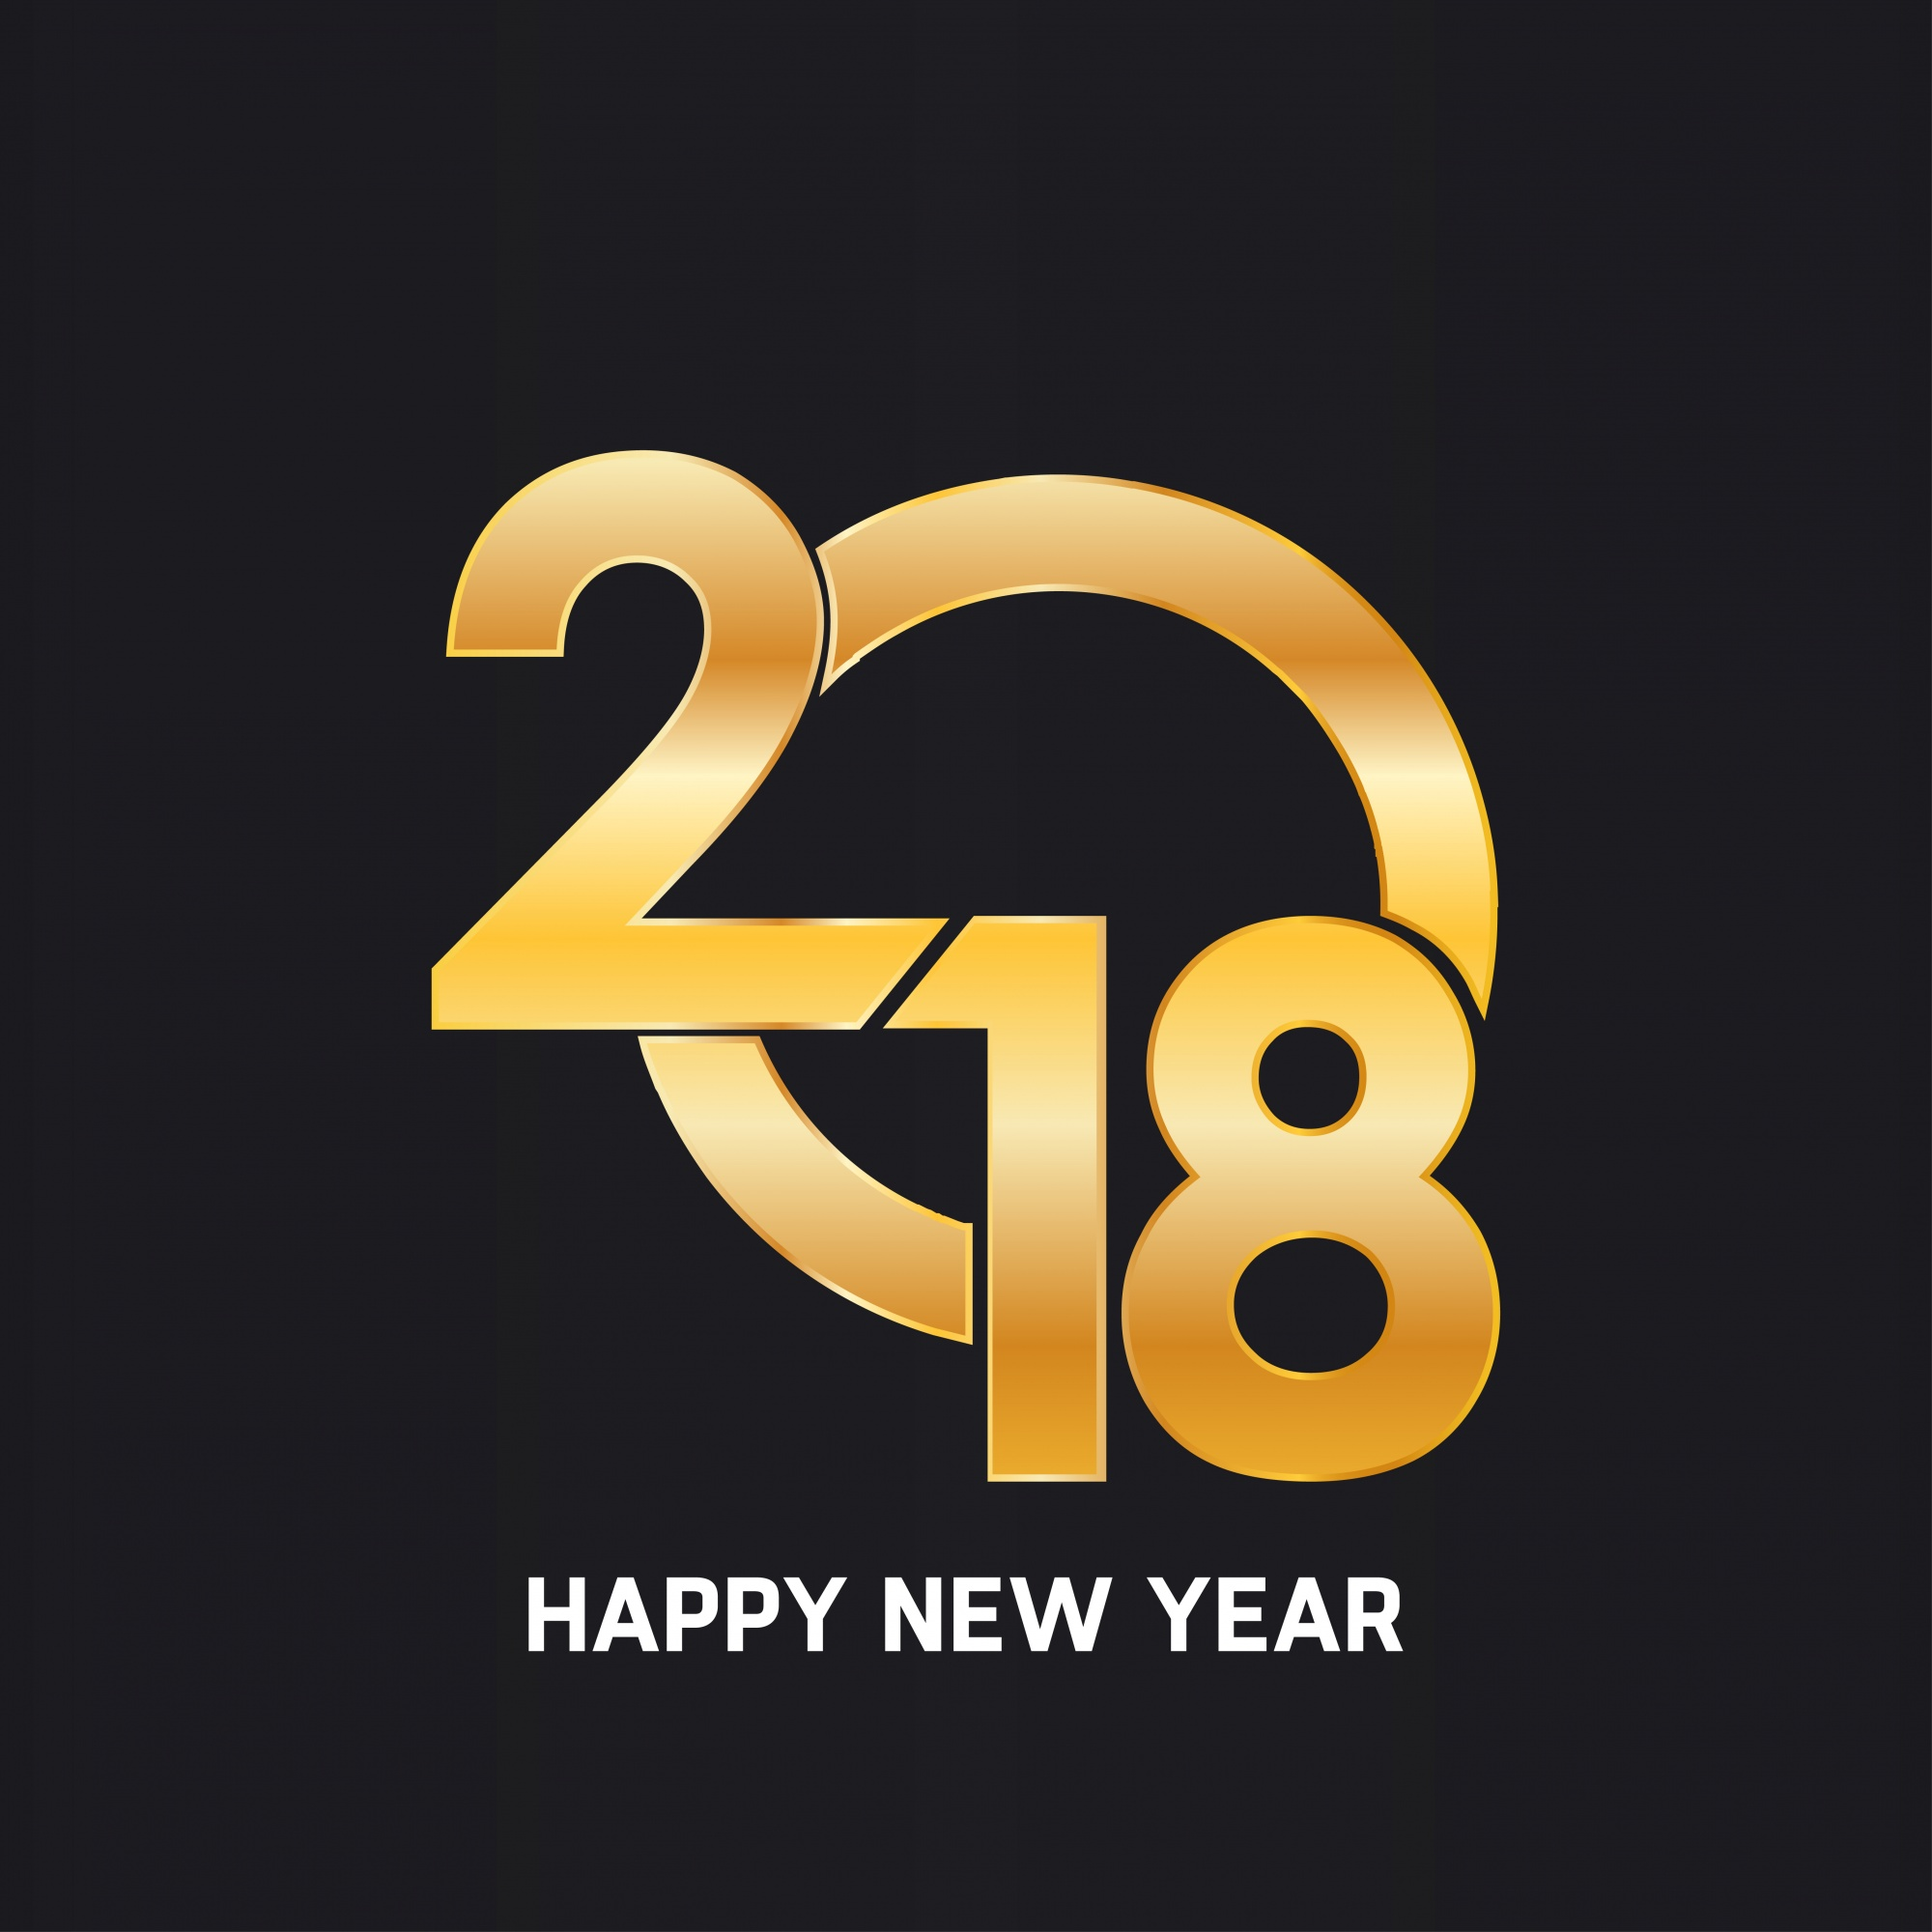 Happy new year 2018 golden text design